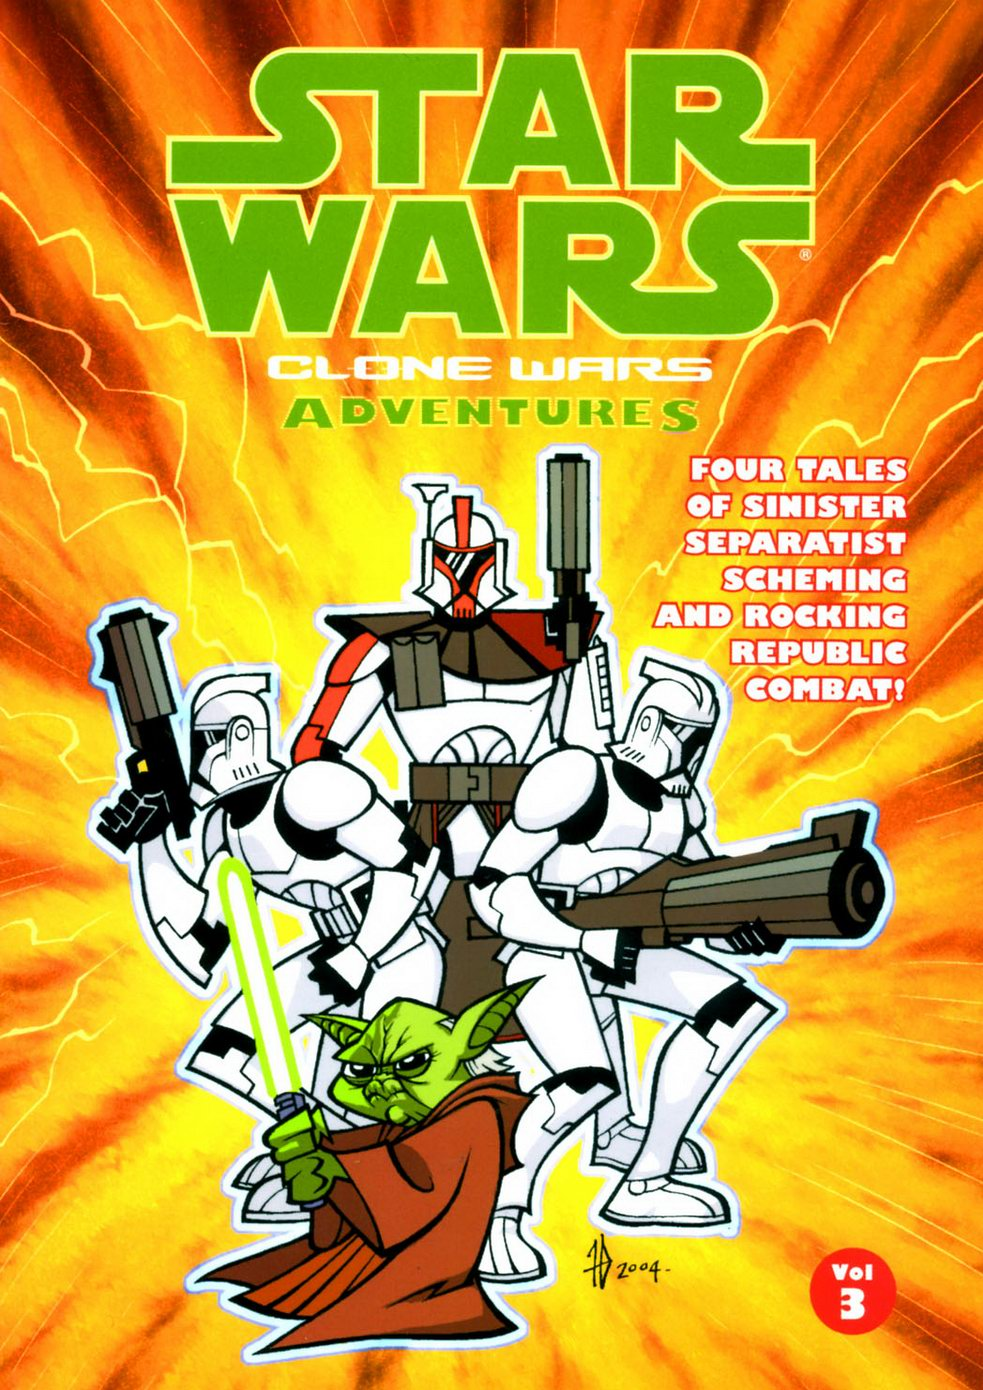 "My story ""One Battle"", which features Separatist Commandos fighting against a droid army is included in this volume.  As the Clone Wars continue to rock the Star Wars universe, the Republic's forces, led by the Jedi, find themselves drawn ever-deeper into Darth Sidious' evil web. With stories covering all aspects of the Clone Wars - from the trials of the revered Jedi Master Yoda, to the tribulations of the lowliest Clone Troopers fighting on the front lines, to the wicked machinations of the dreaded Count Dooku and General Grievous - these fast-paced tales feature a unique look into the world of Star Wars and at the events that shook the galaxy far, far away...   Buy it here!"